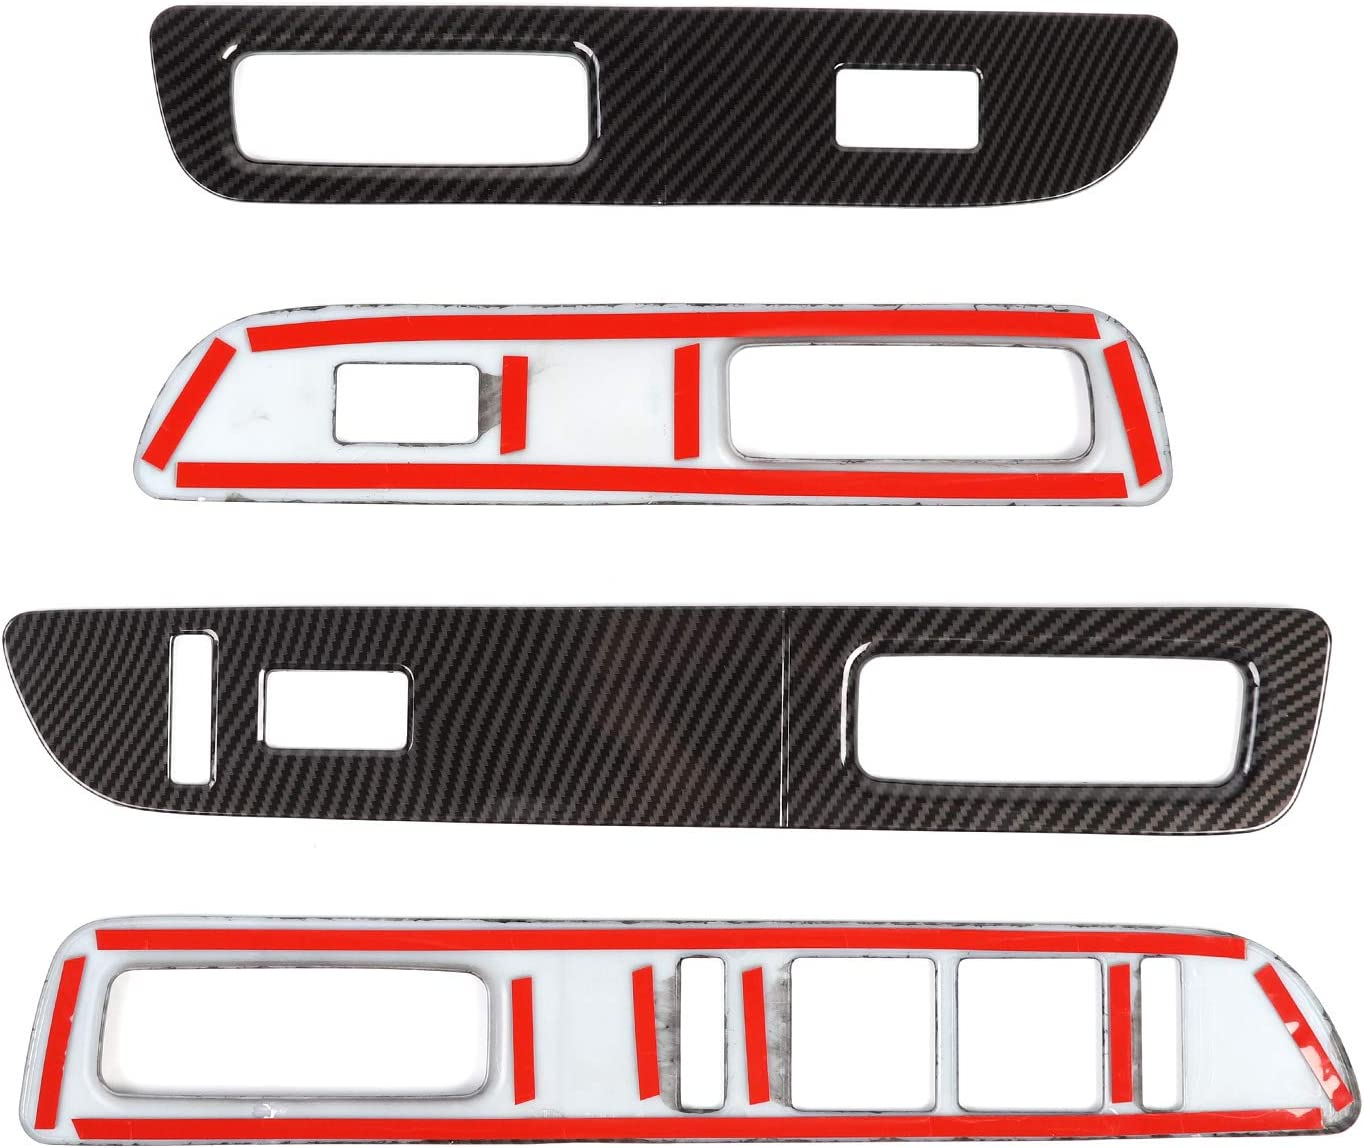 Carbon Fiber Grain Voodonala for F150 Window Lift Panel Switch Trim Covers for Ford F150 2009-2014